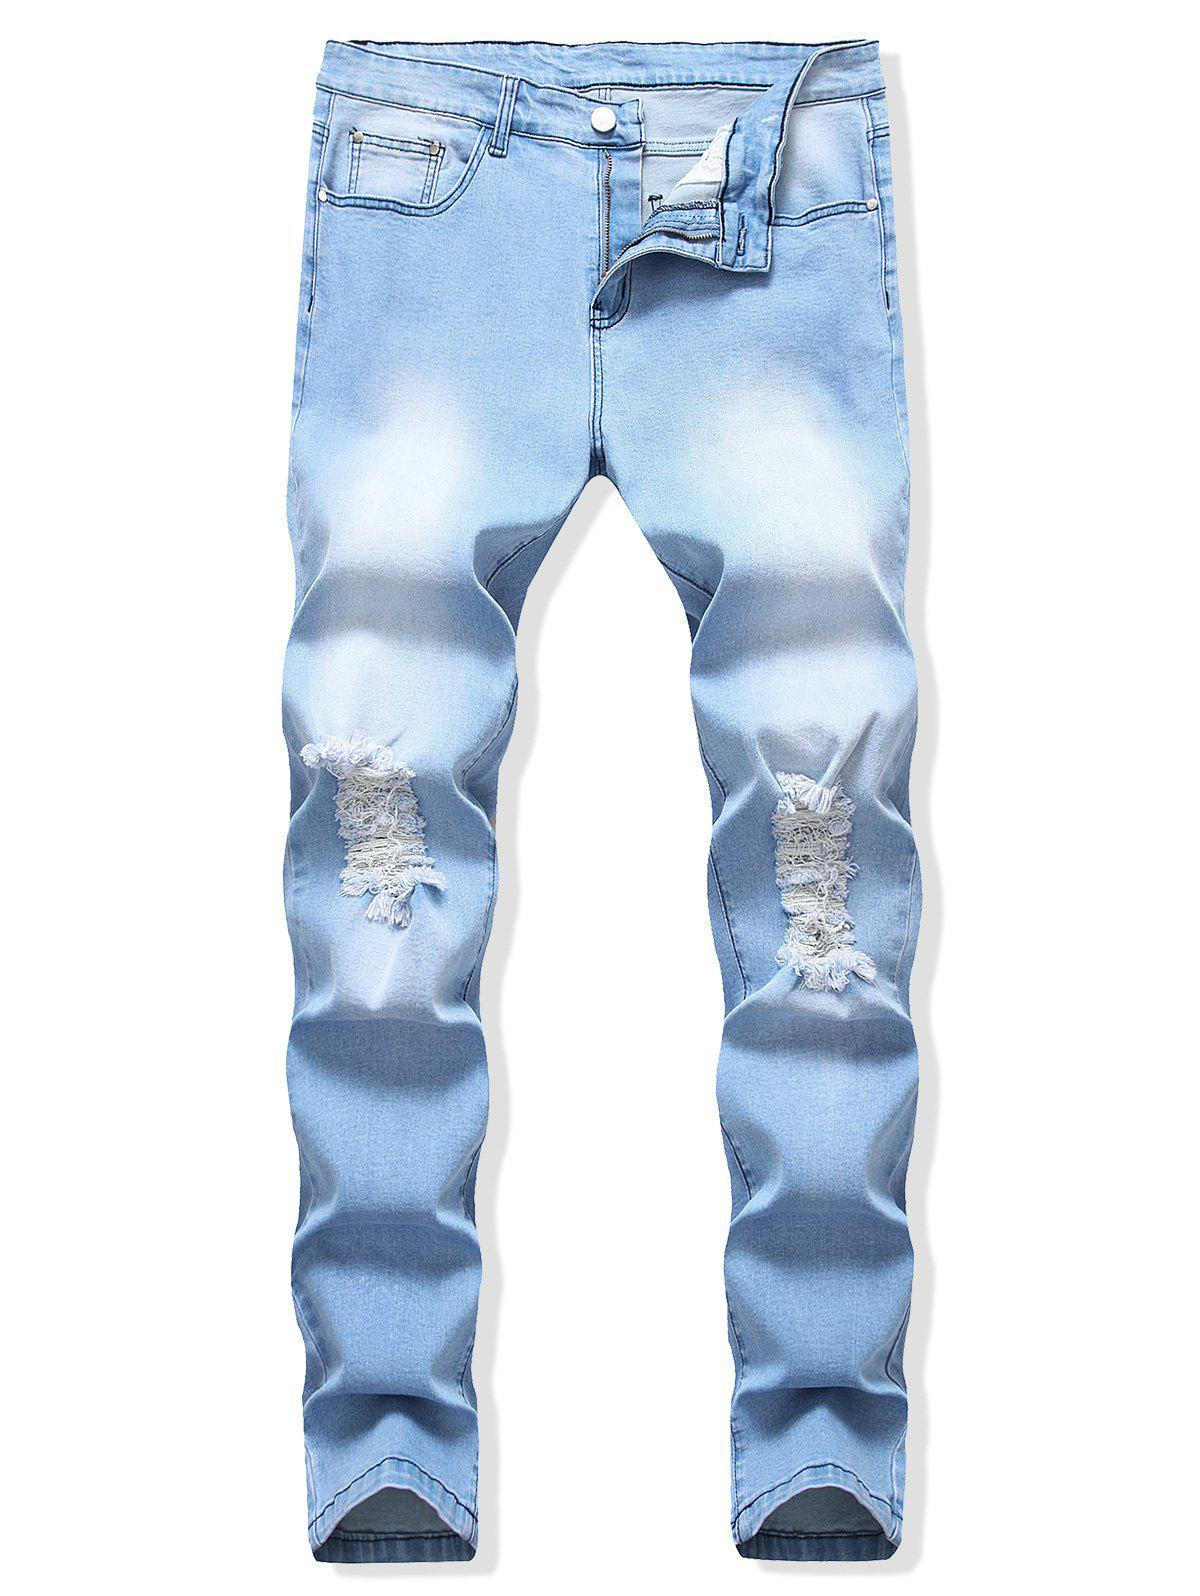 Chic Destroyed Design Light Wash Casual Jeans